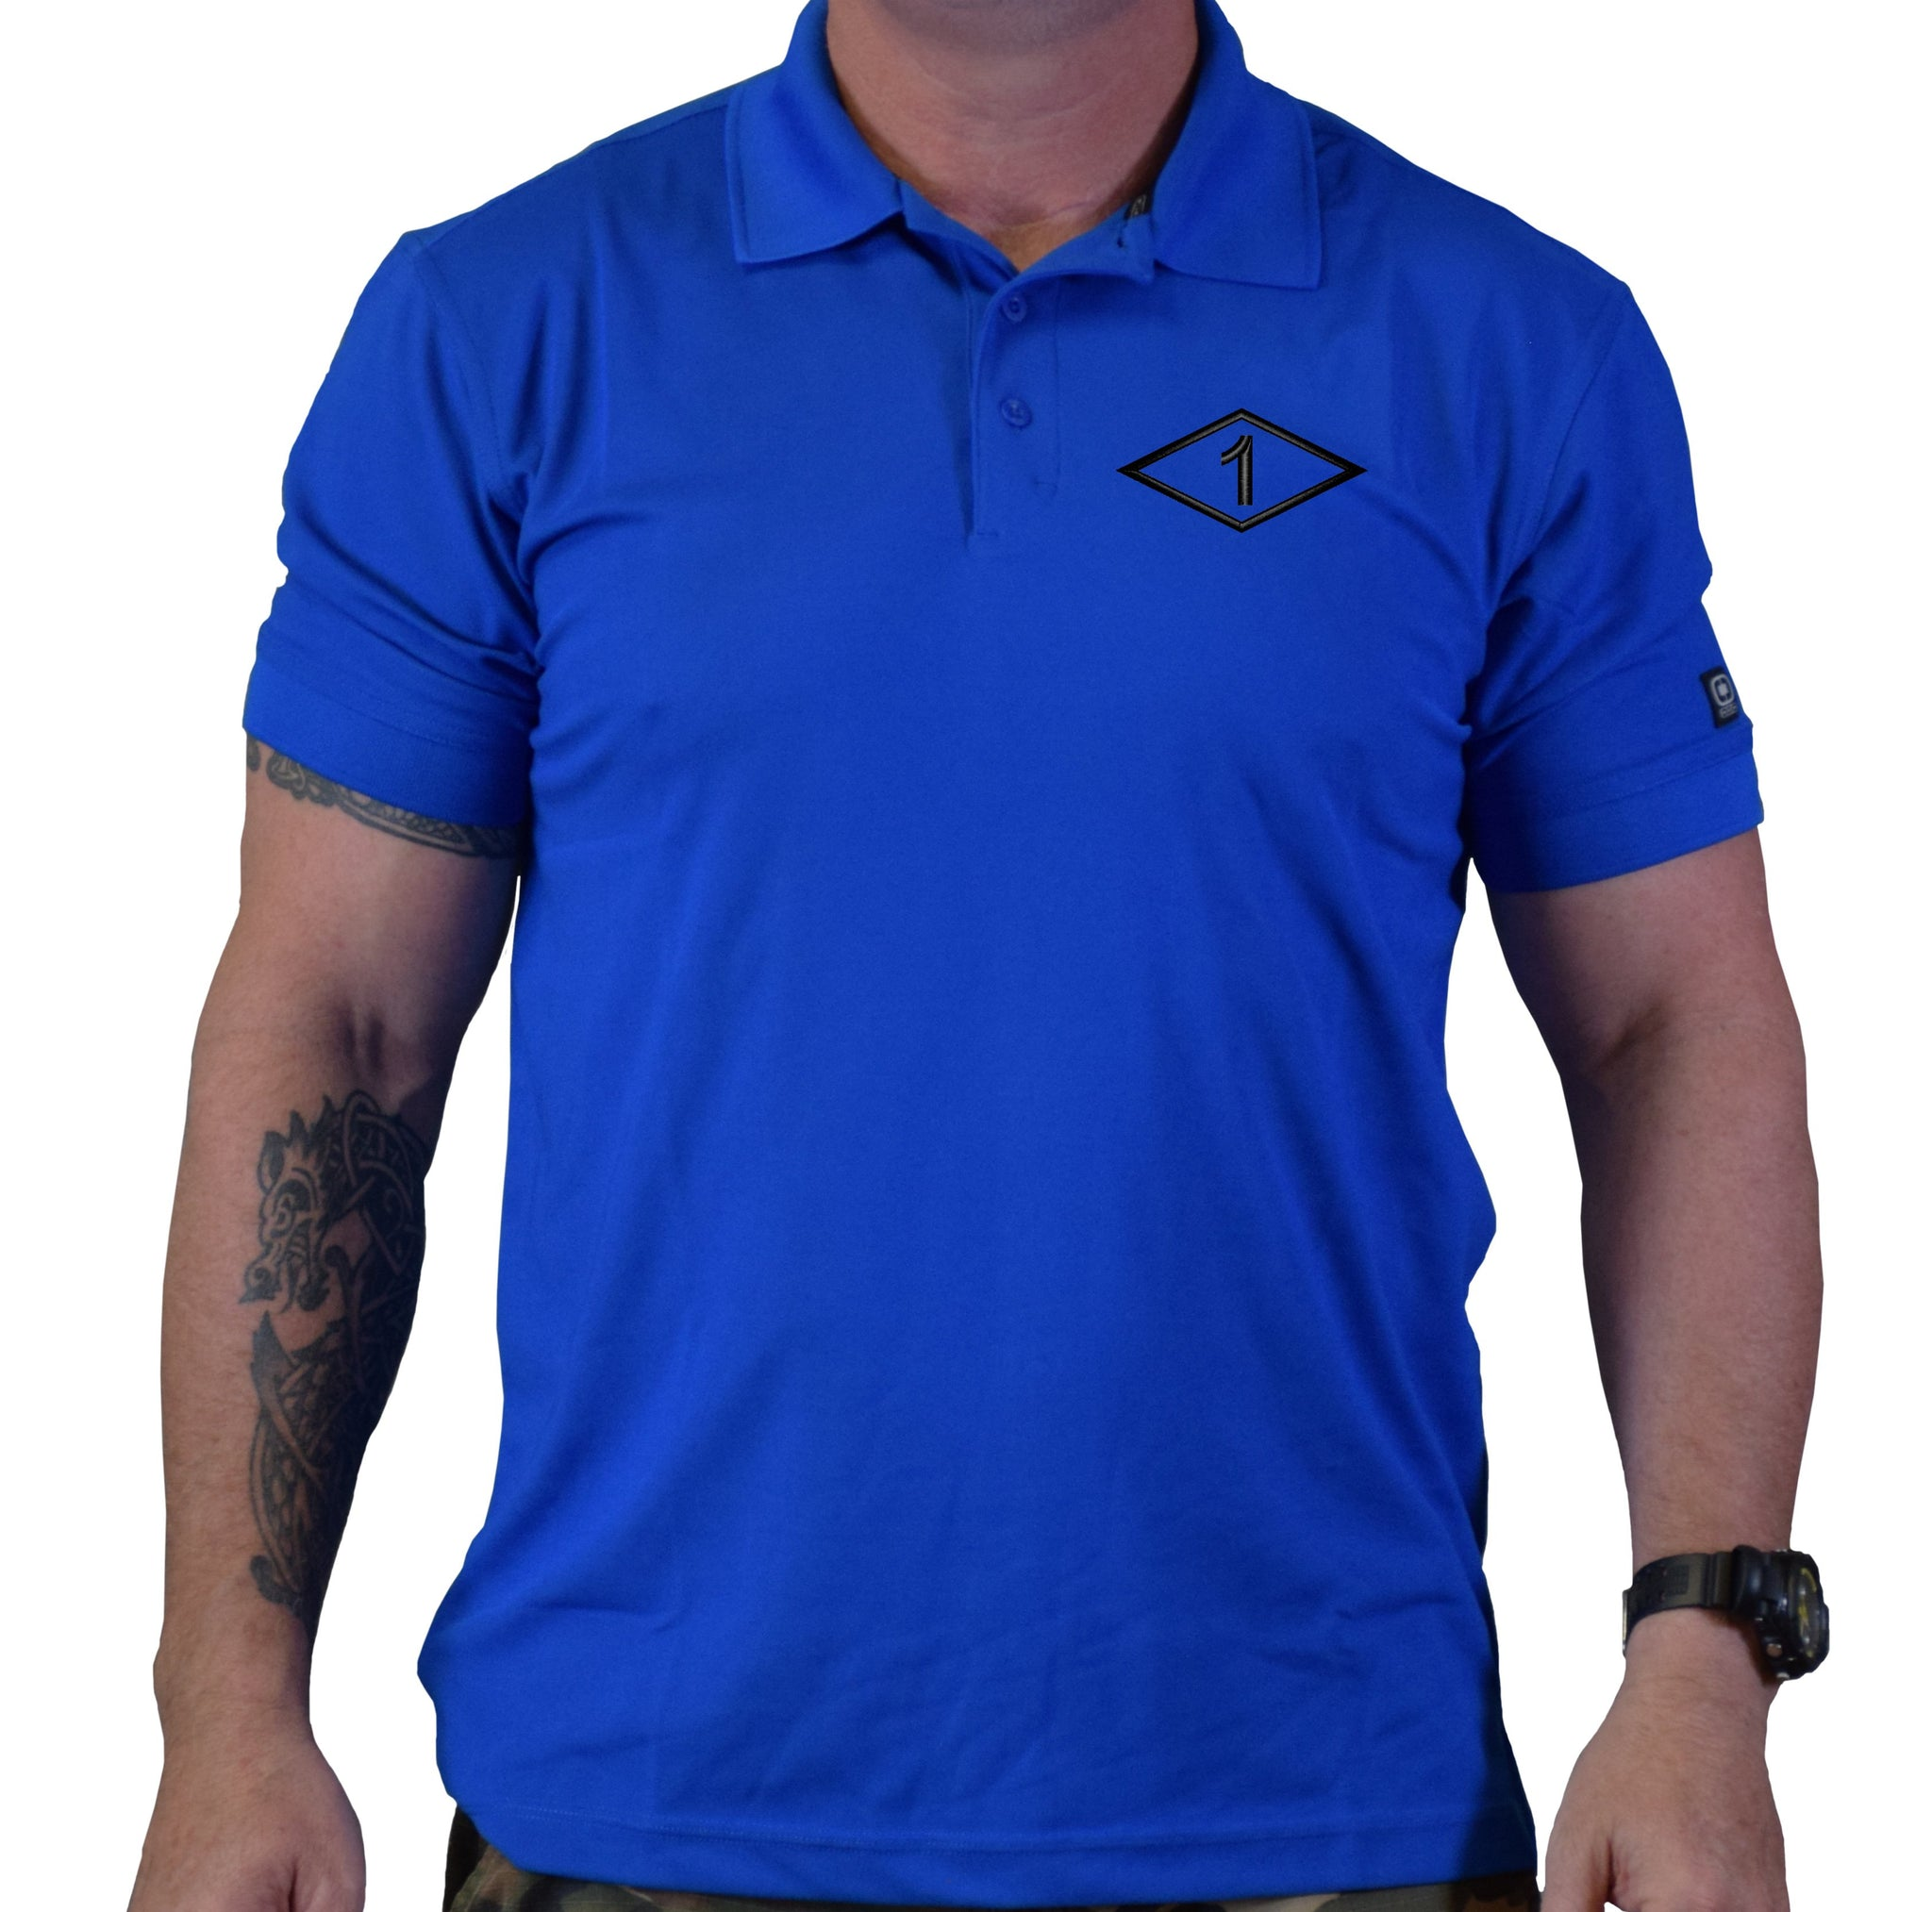 1st Batt Diamond Polo